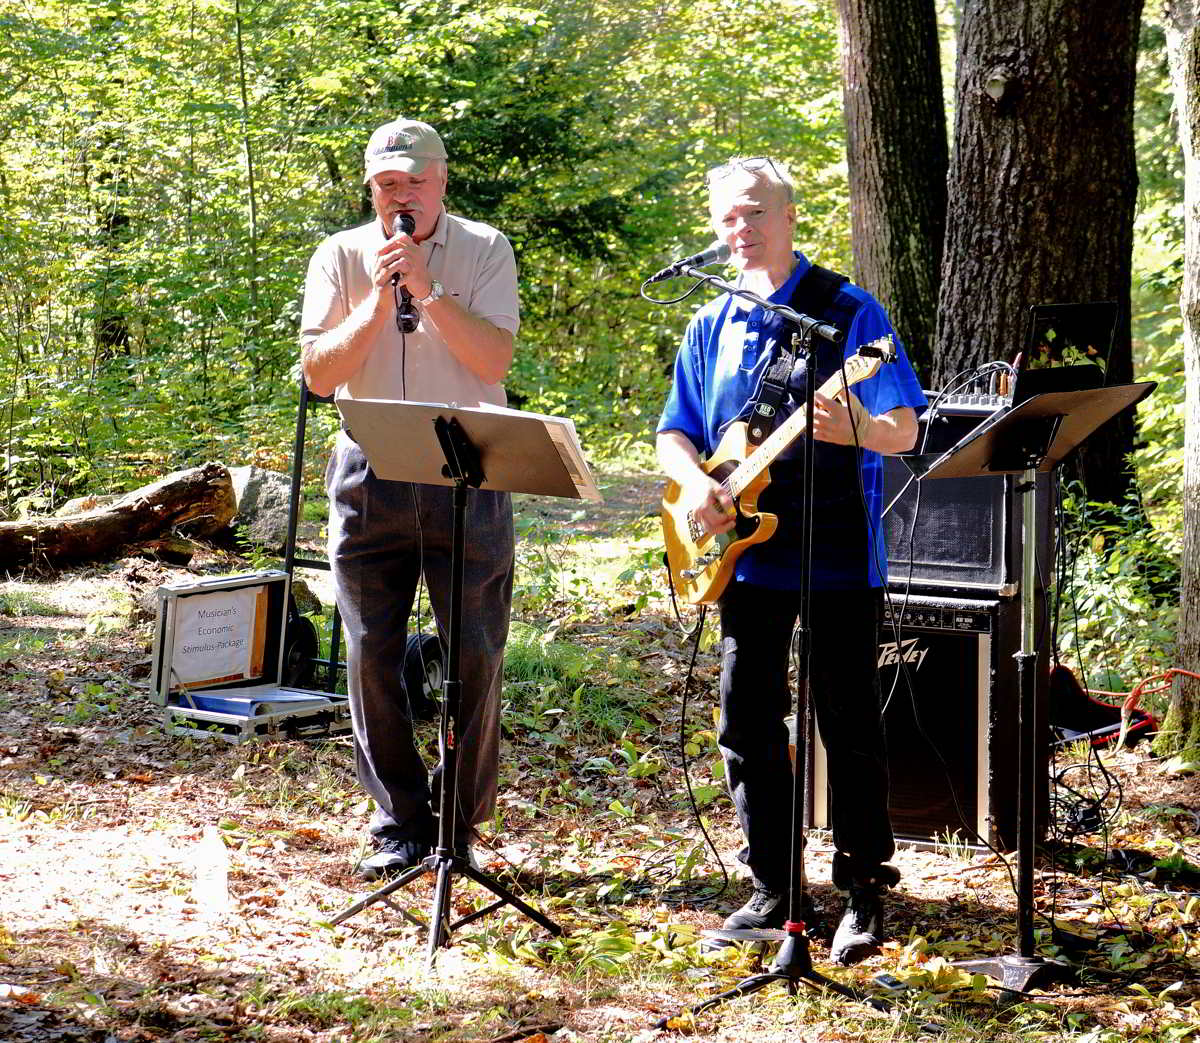 2-person band playing at springdale mill celebration